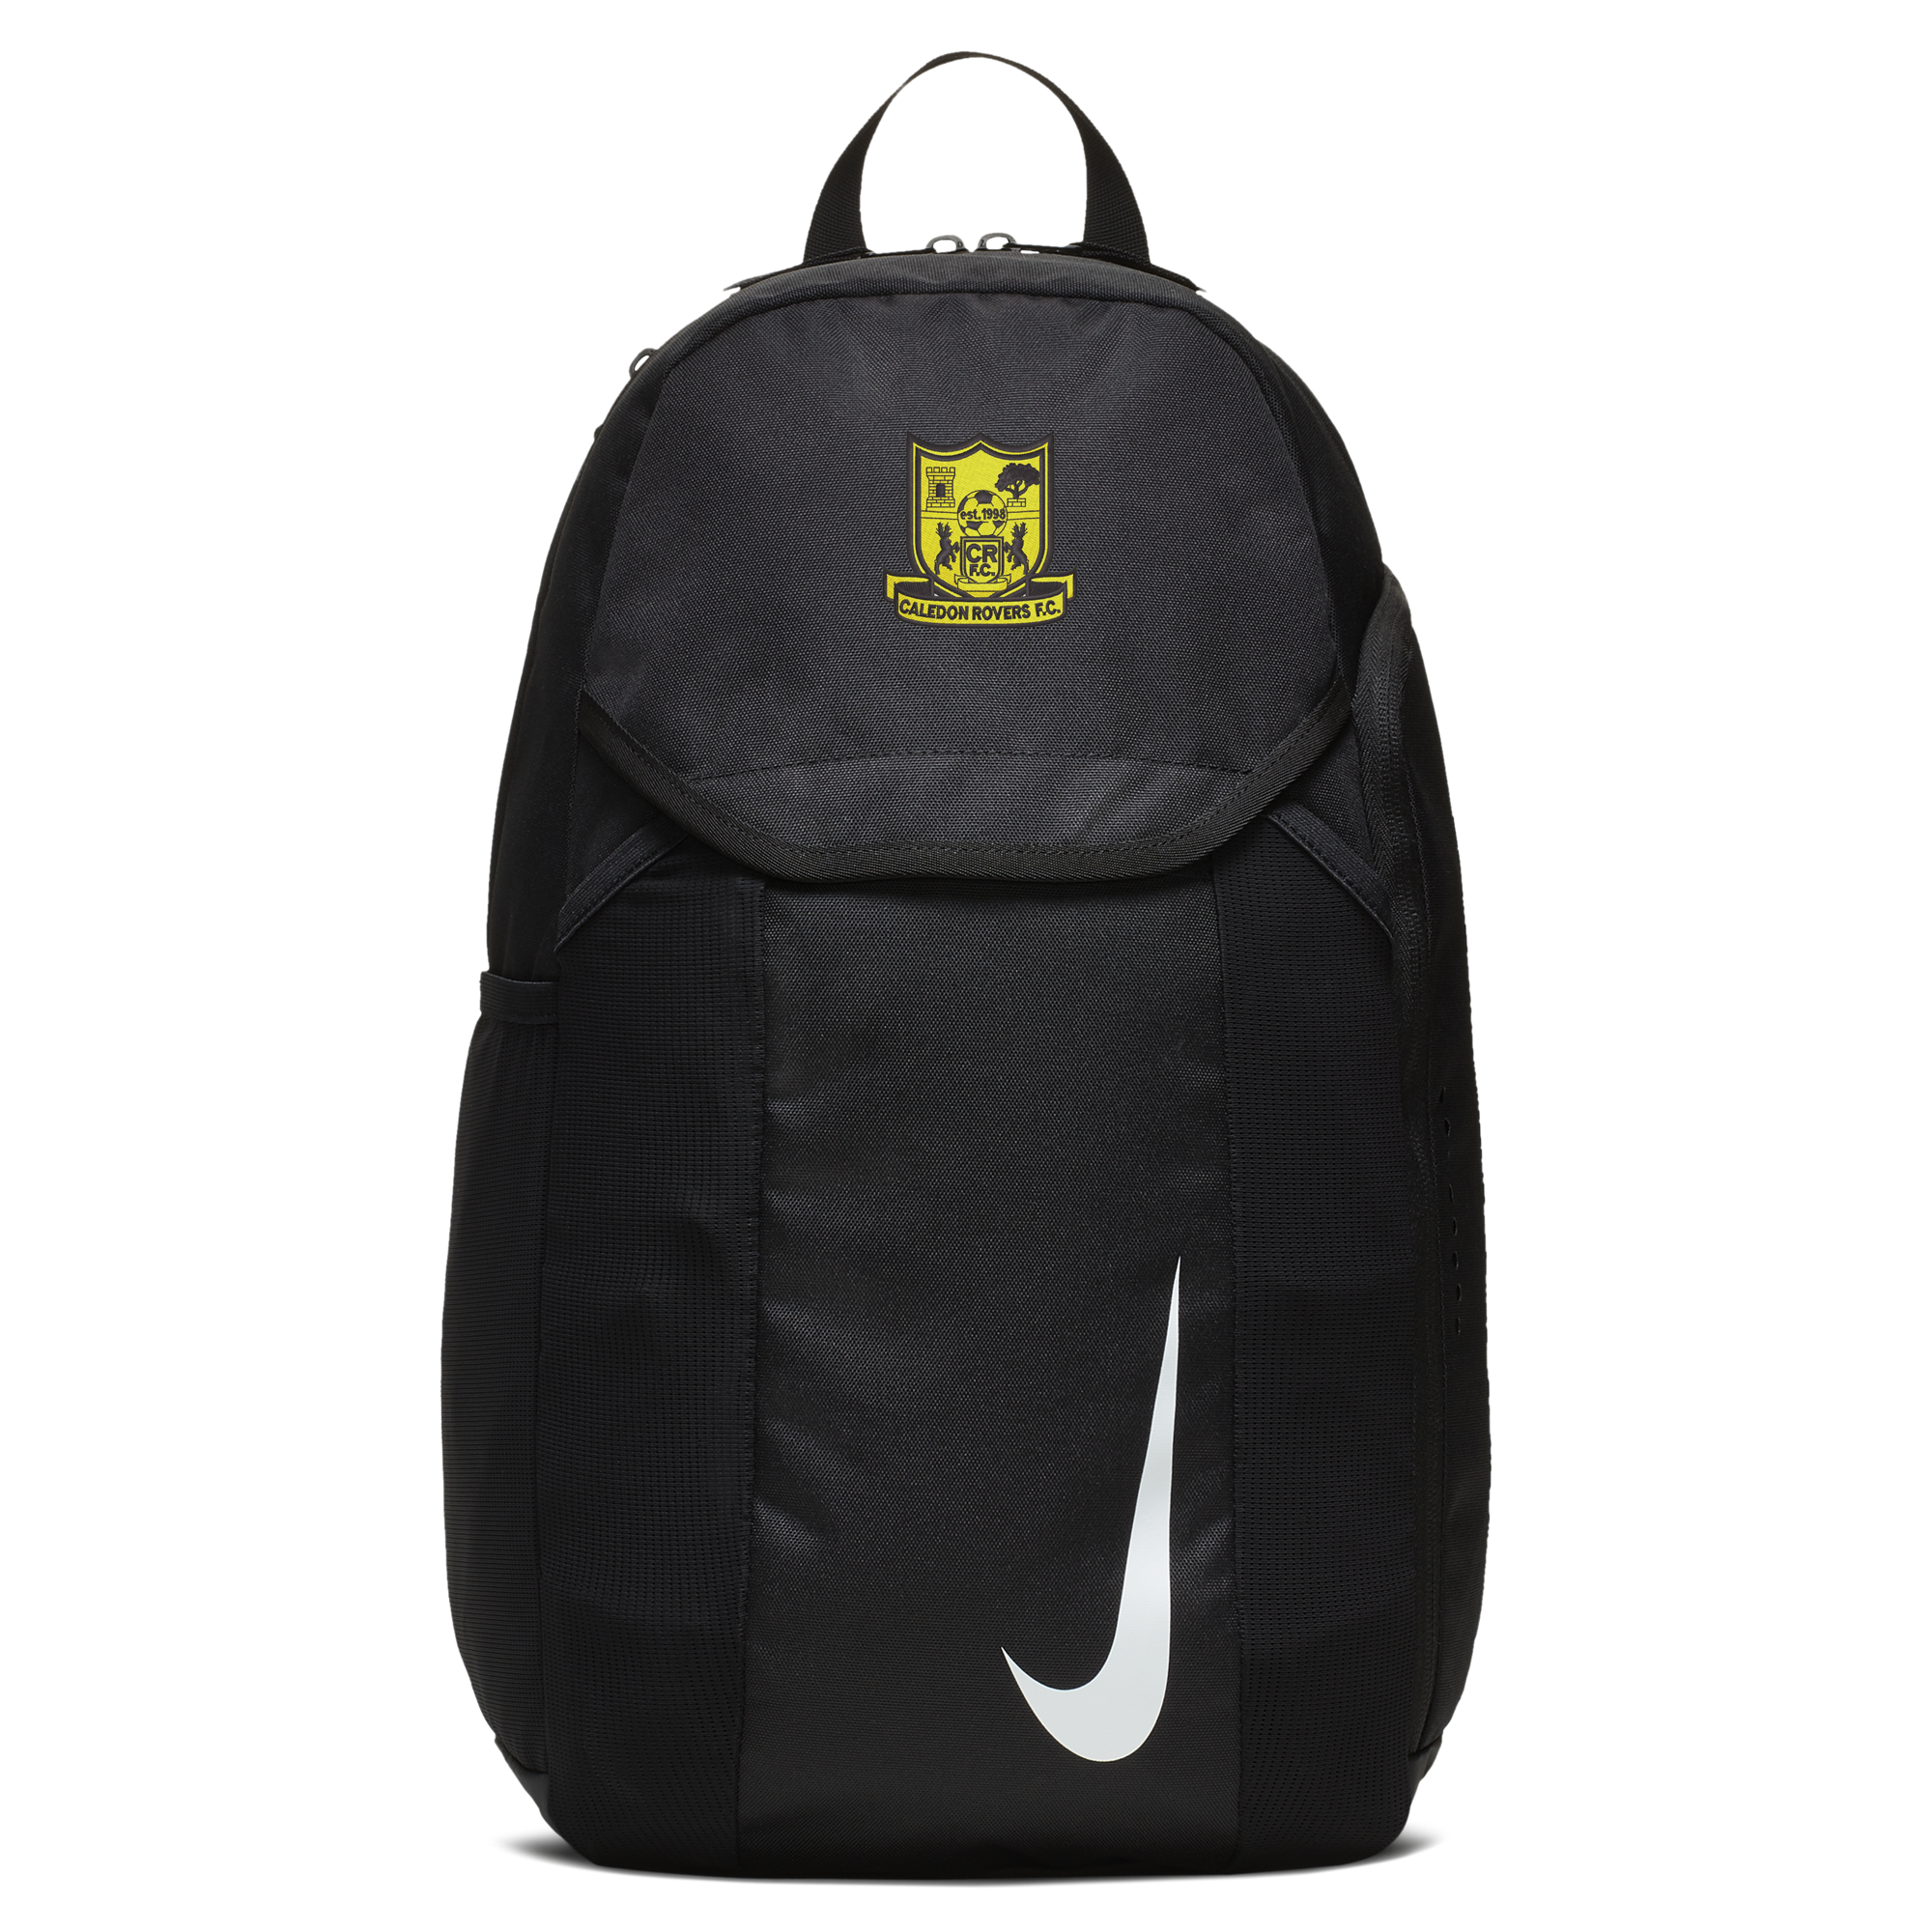 caledon rovers fc backpack 35813 p